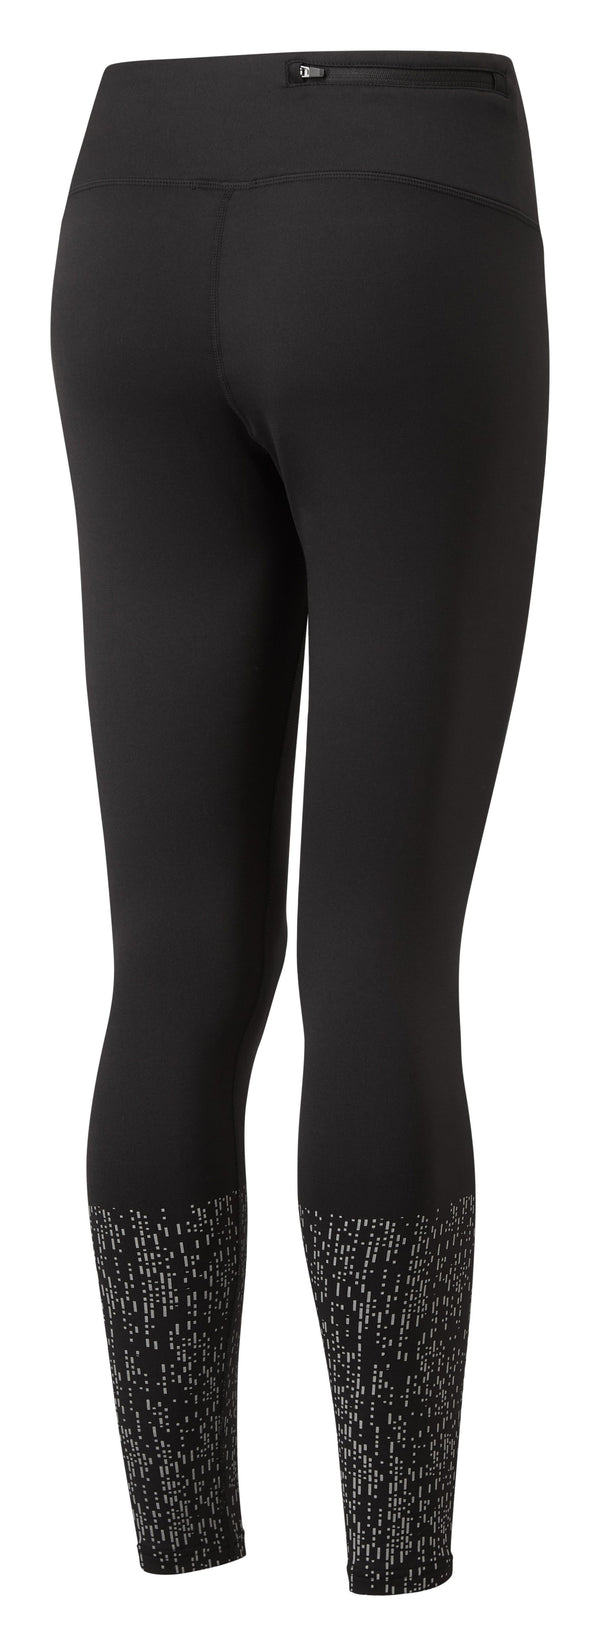 RonHill W Life Nightrunner Tight - Black/Reflect